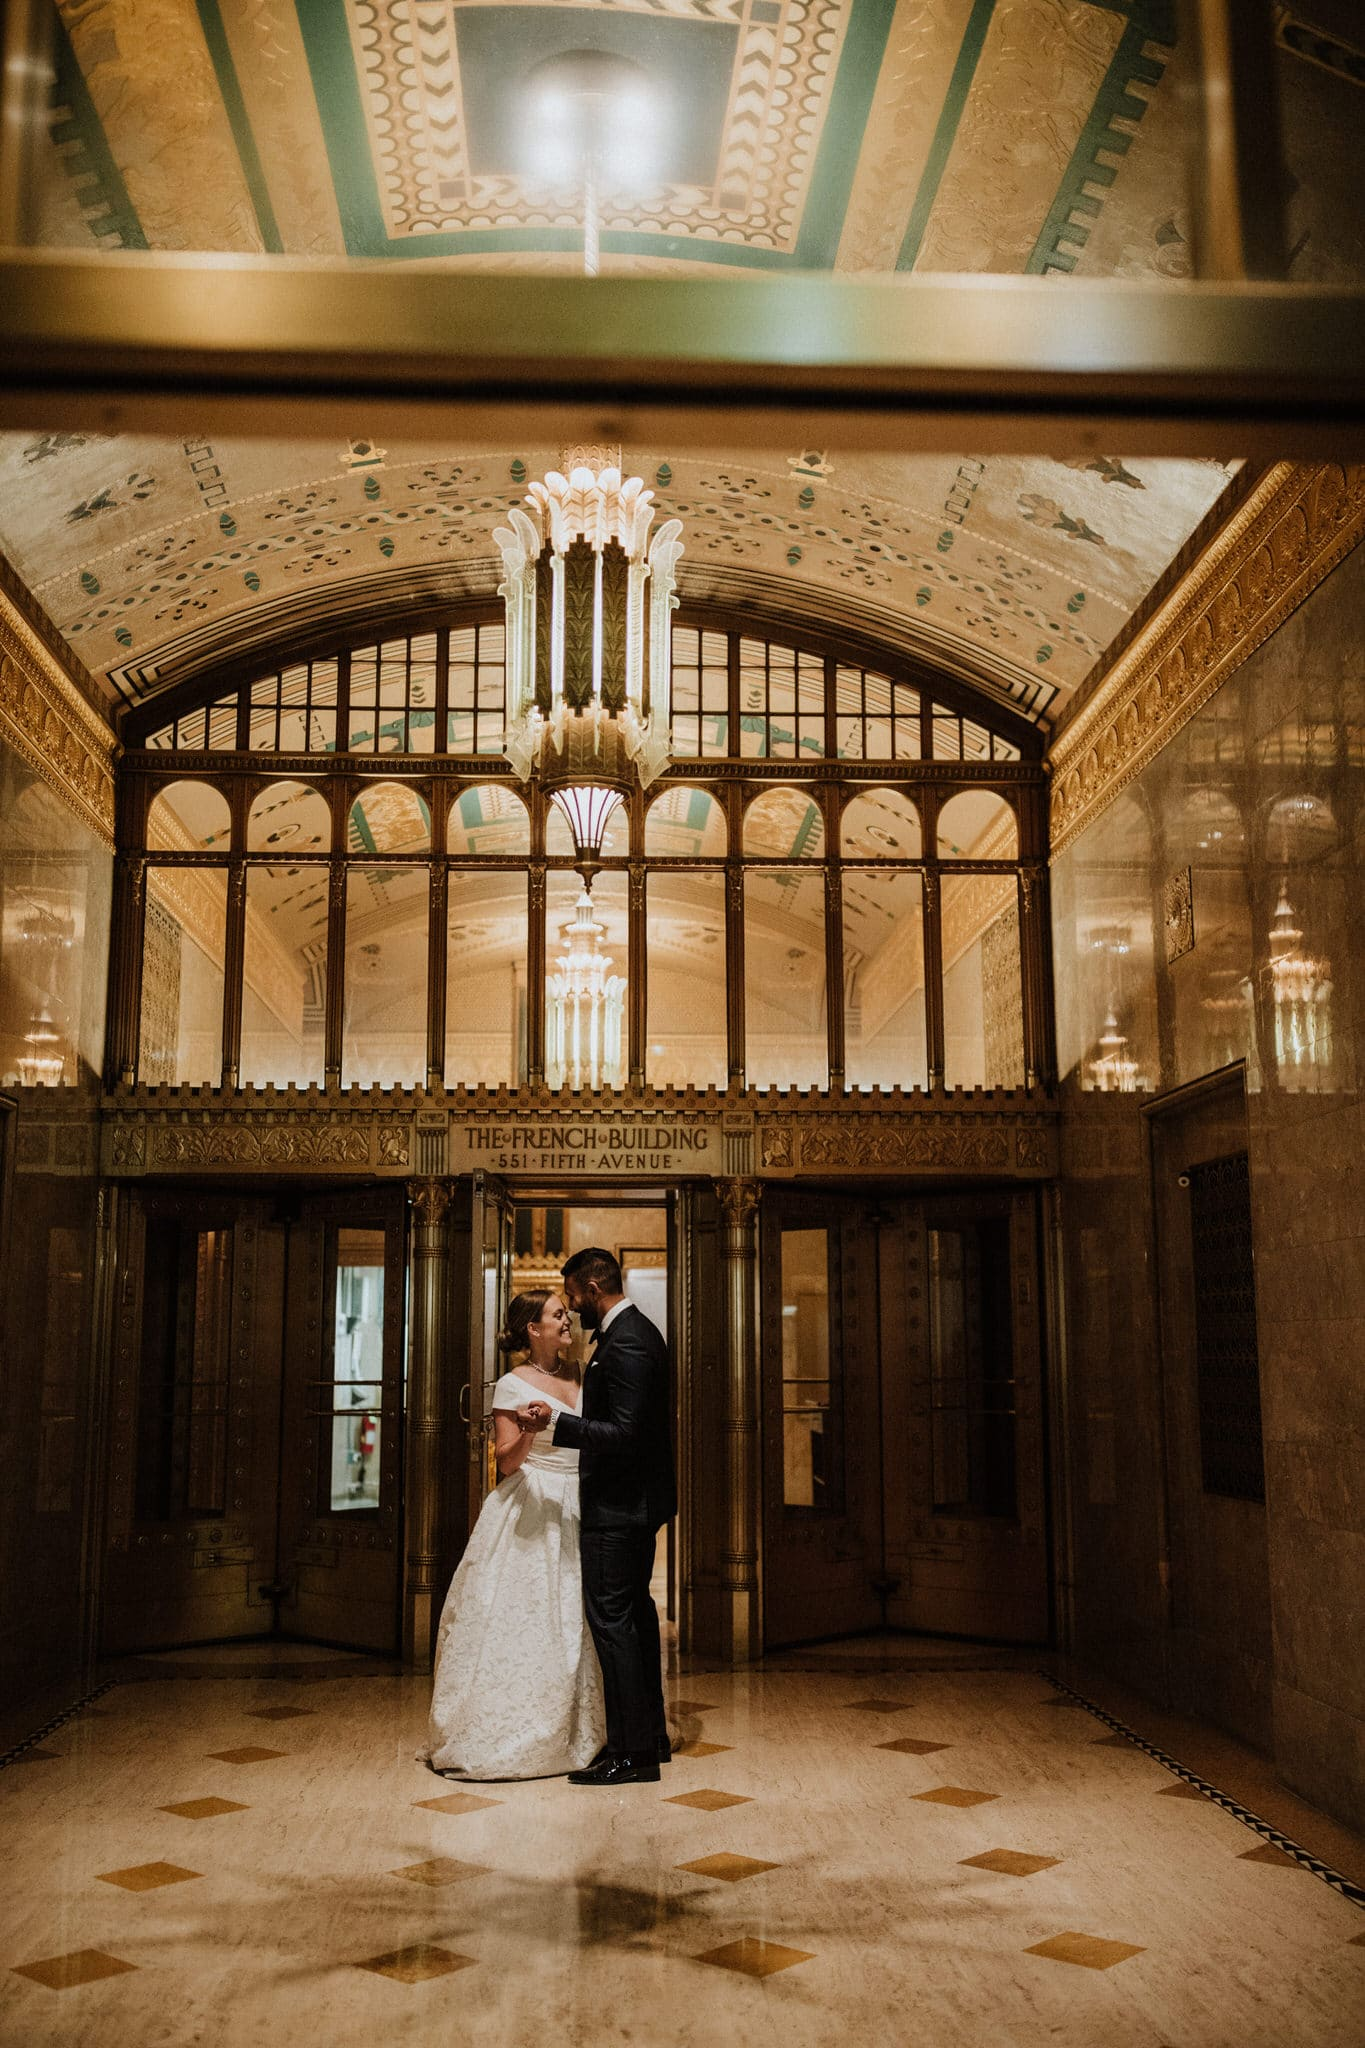 The bride and groom dance in The French Building in New York City. Wedding Photographer Brent Calis.